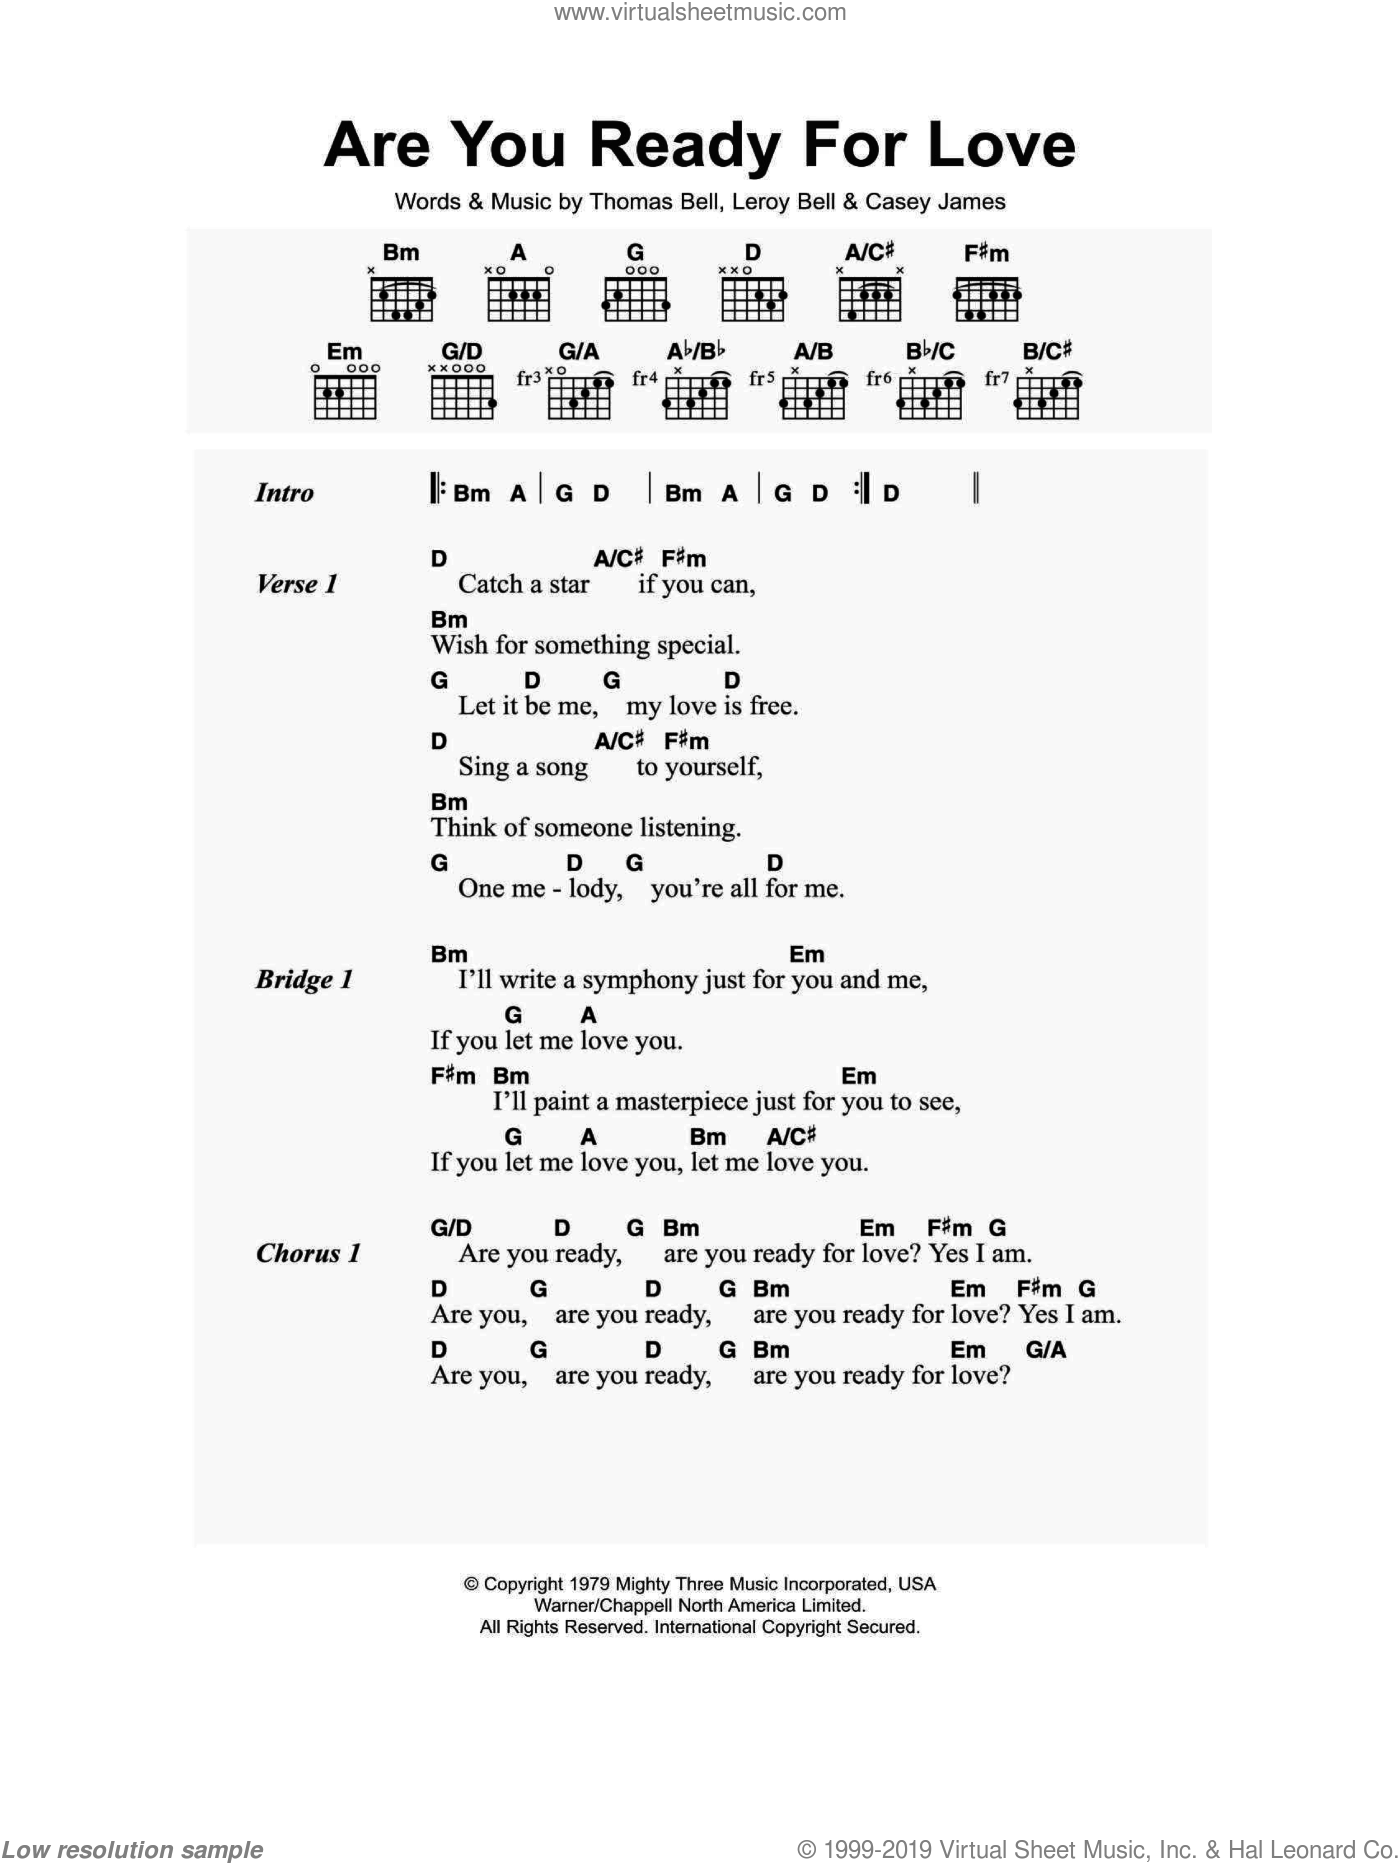 Are You Ready For Love sheet music for guitar (chords) by Thomas Bell, Elton John, Casey James and Leroy Bell. Score Image Preview.